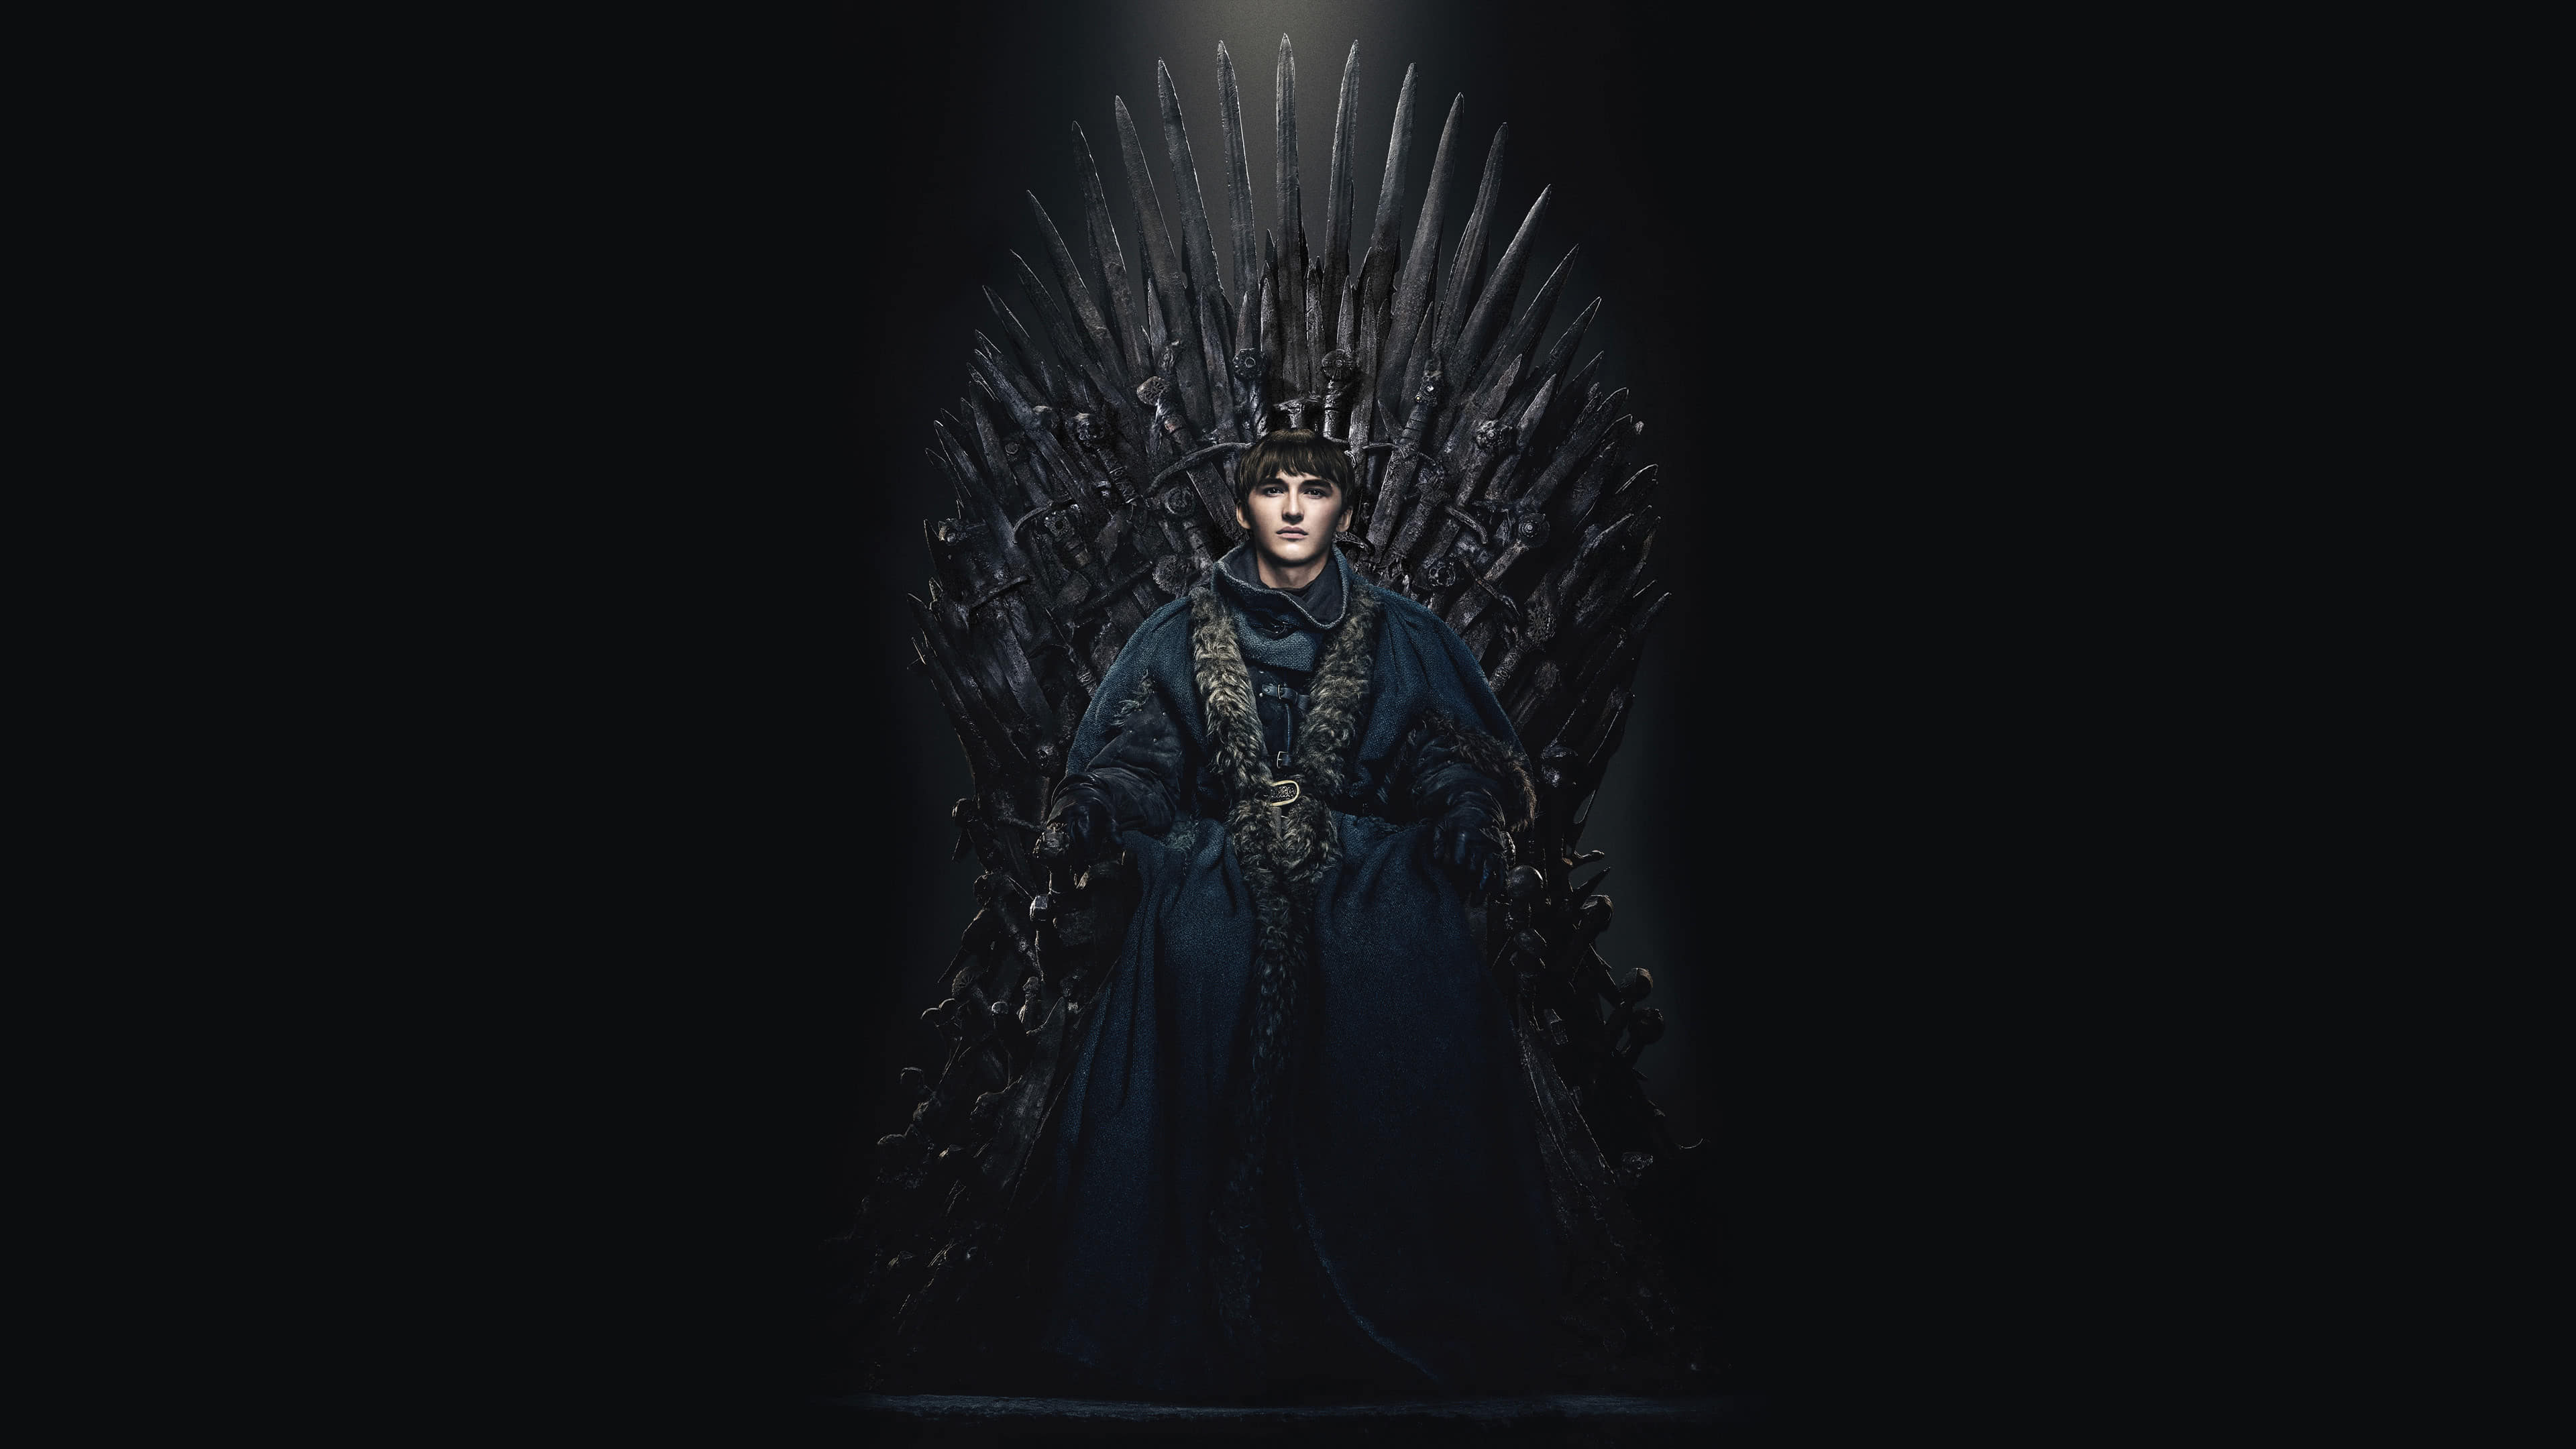 Game Of Thrones Wallpaper Iron Throne Wallpaper Game Of Thrones